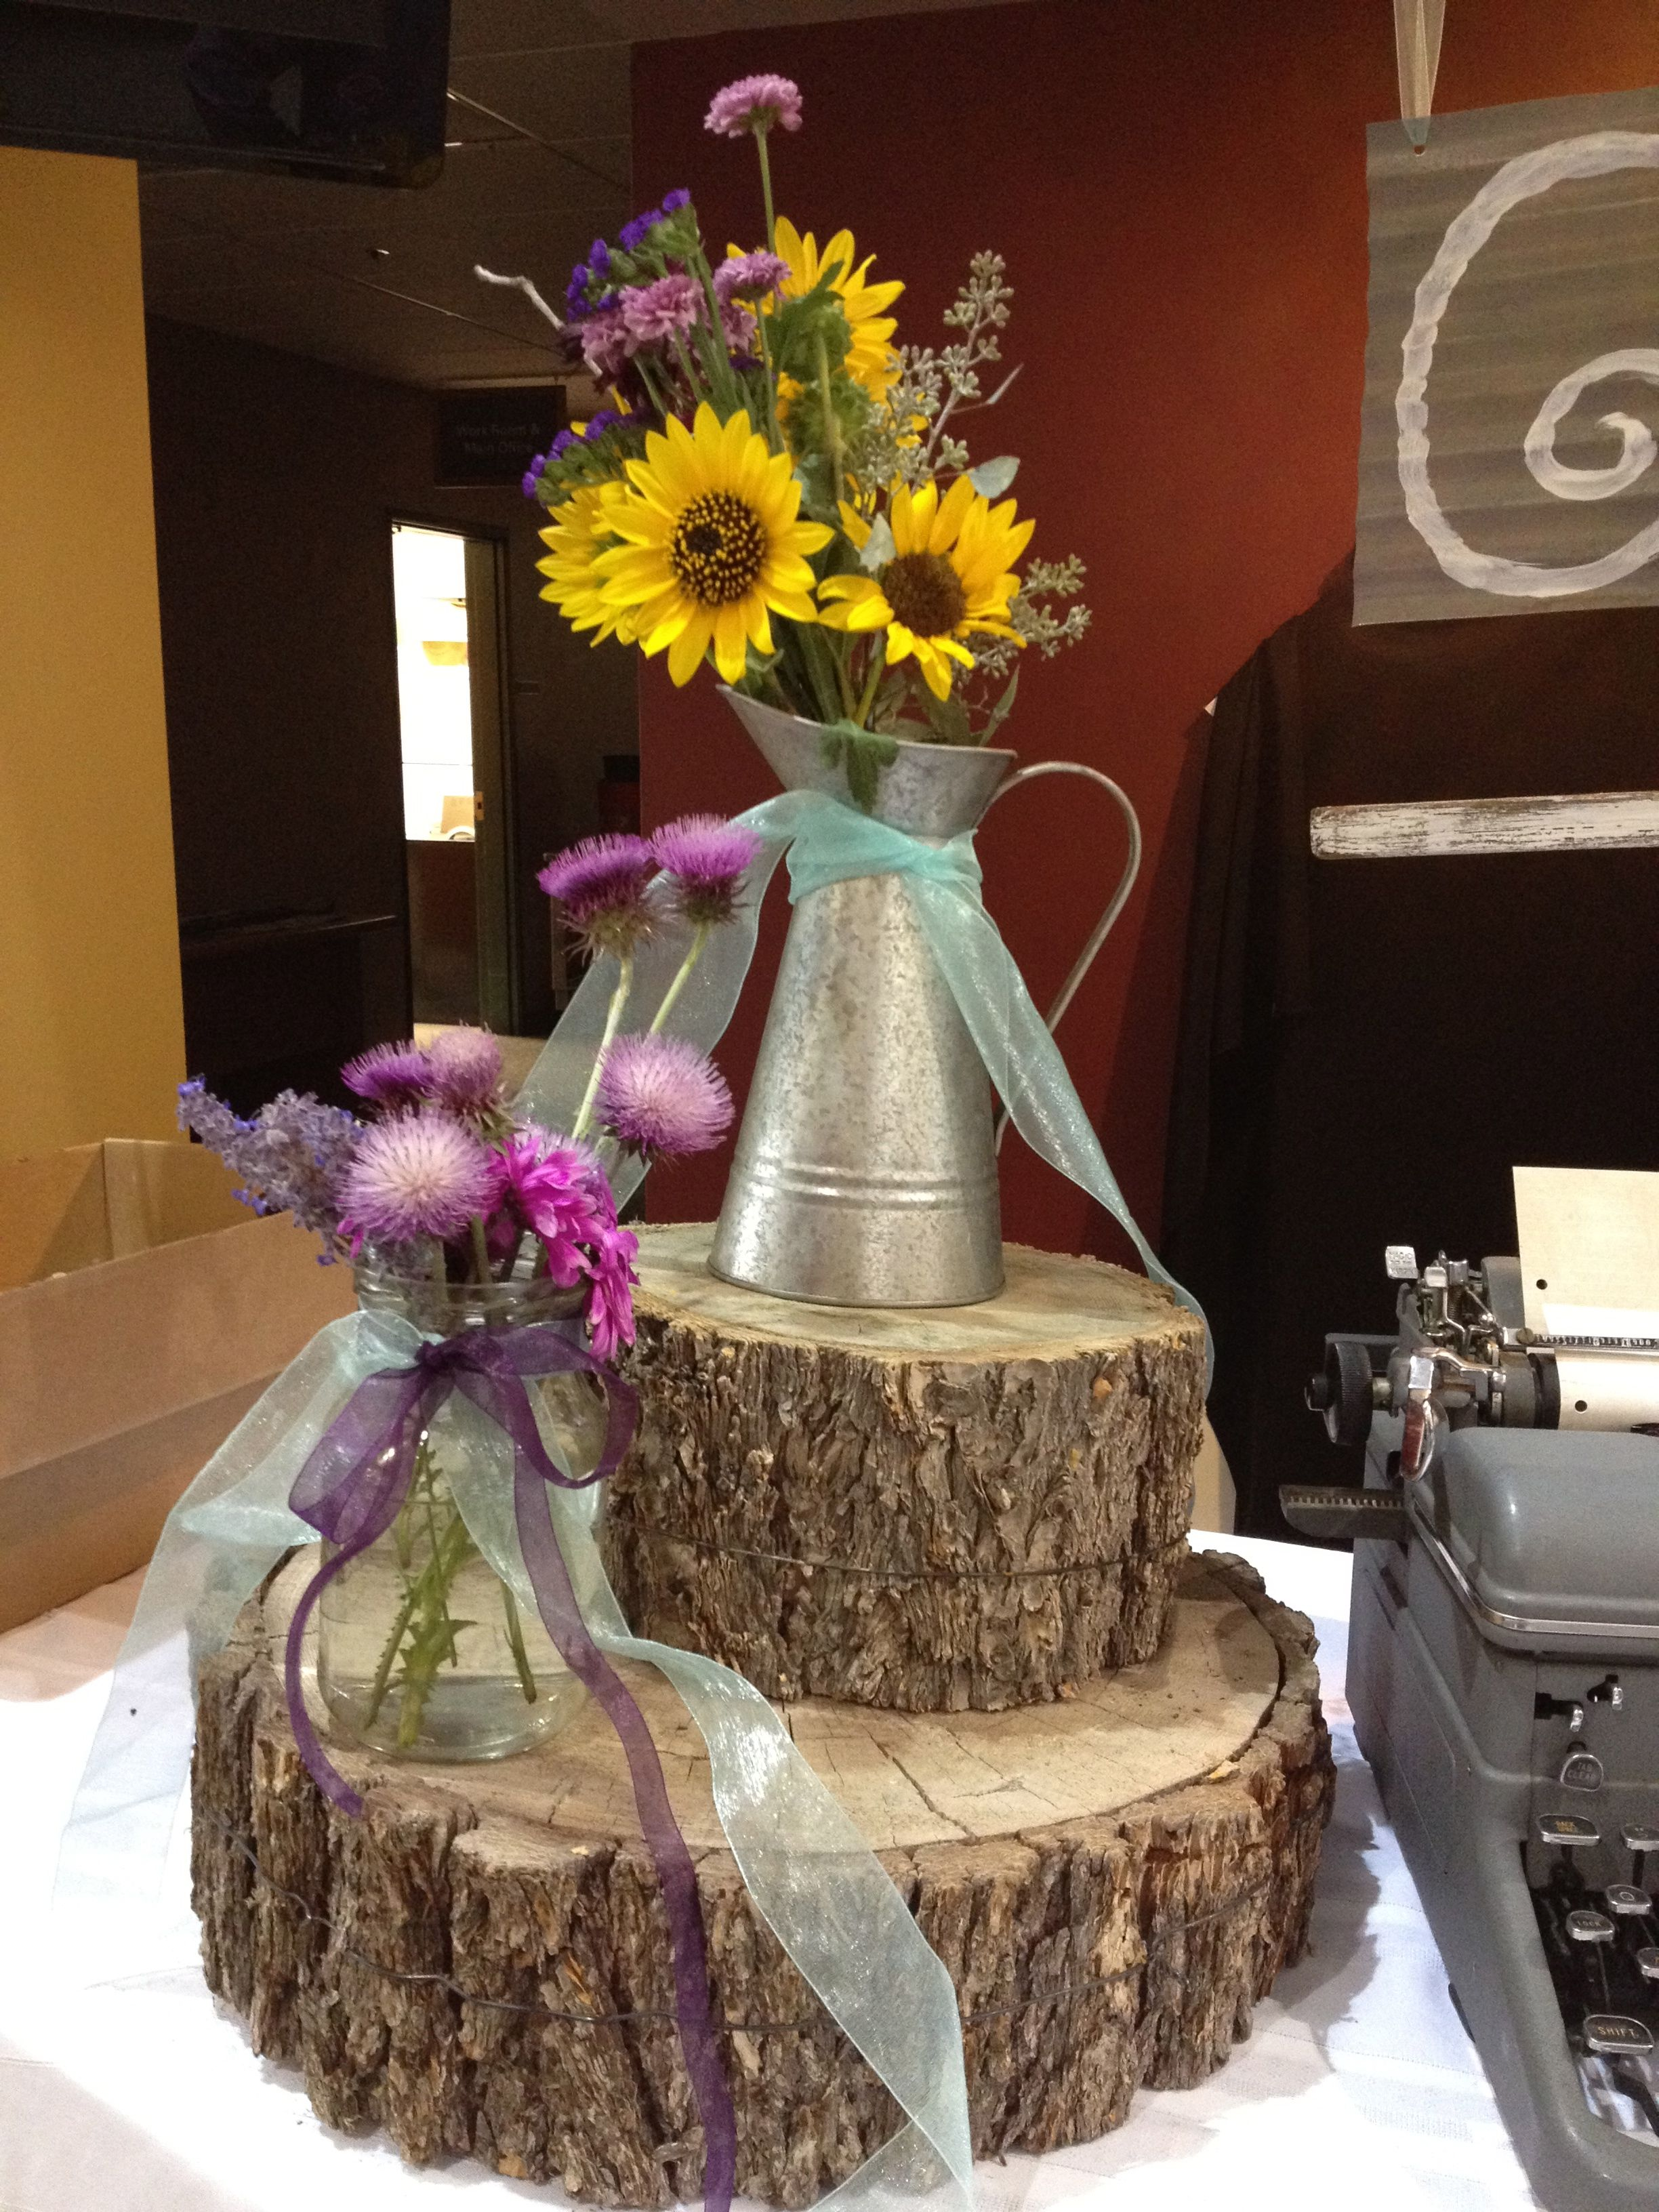 Rustic wedding reception food table decor using wood